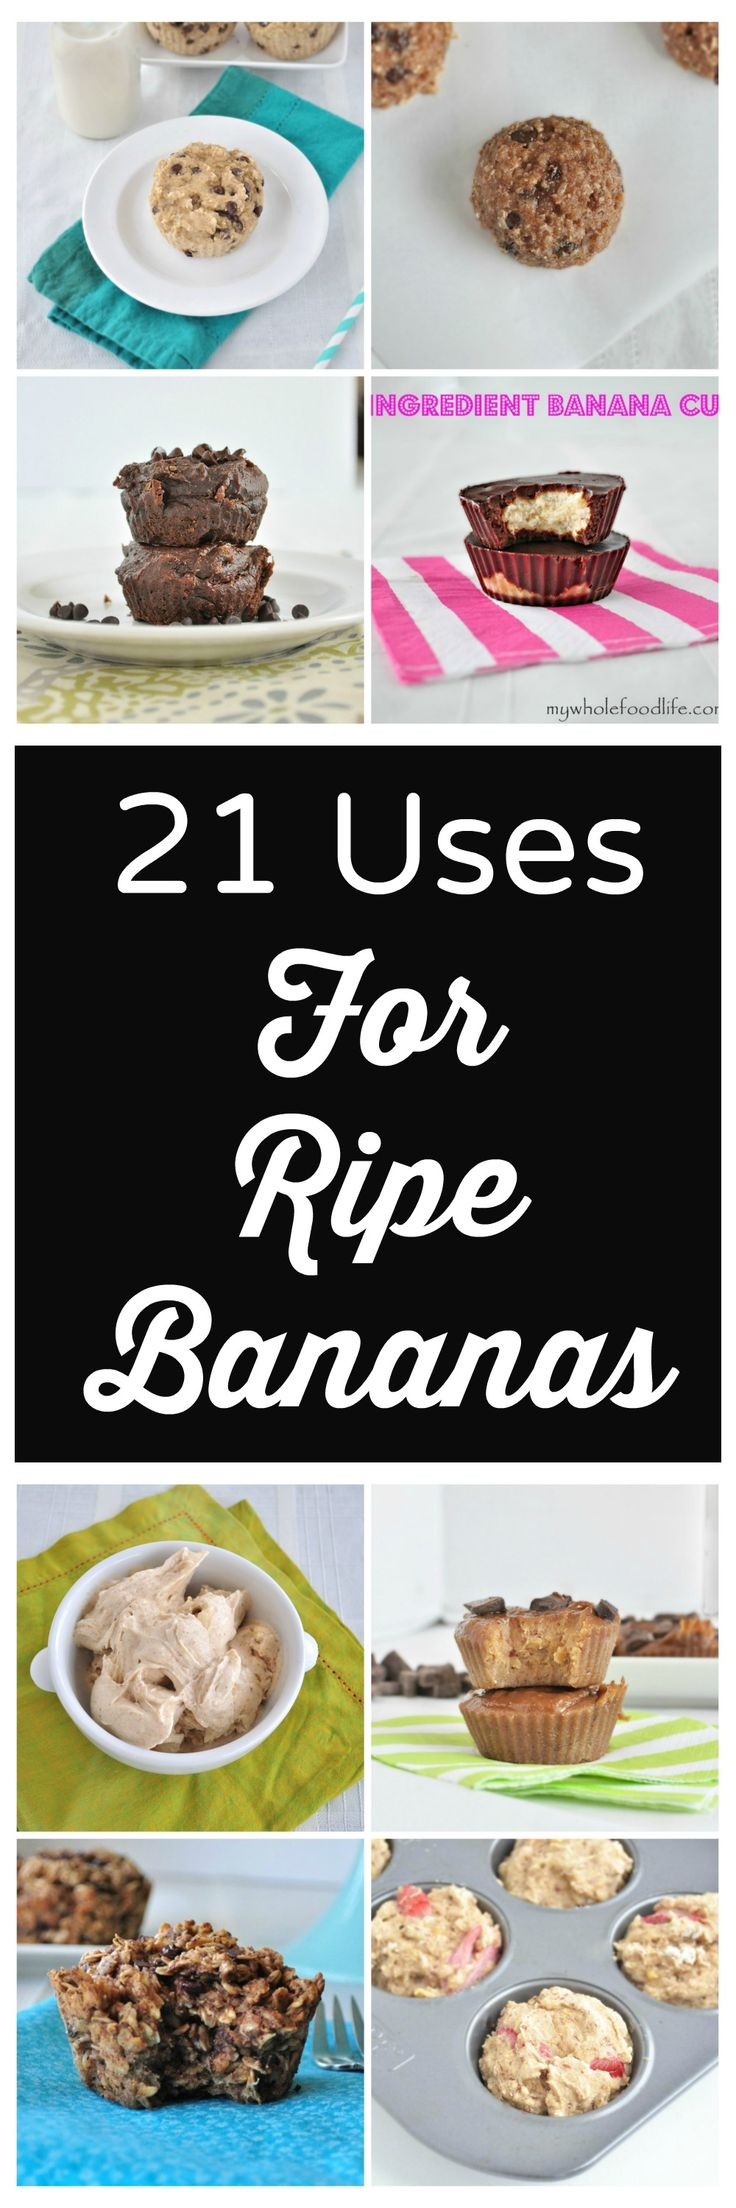 Uses for Ripe Bananas.  Super easy recipes your family will love.  Vegan and gluten free.  Many are also grain free!